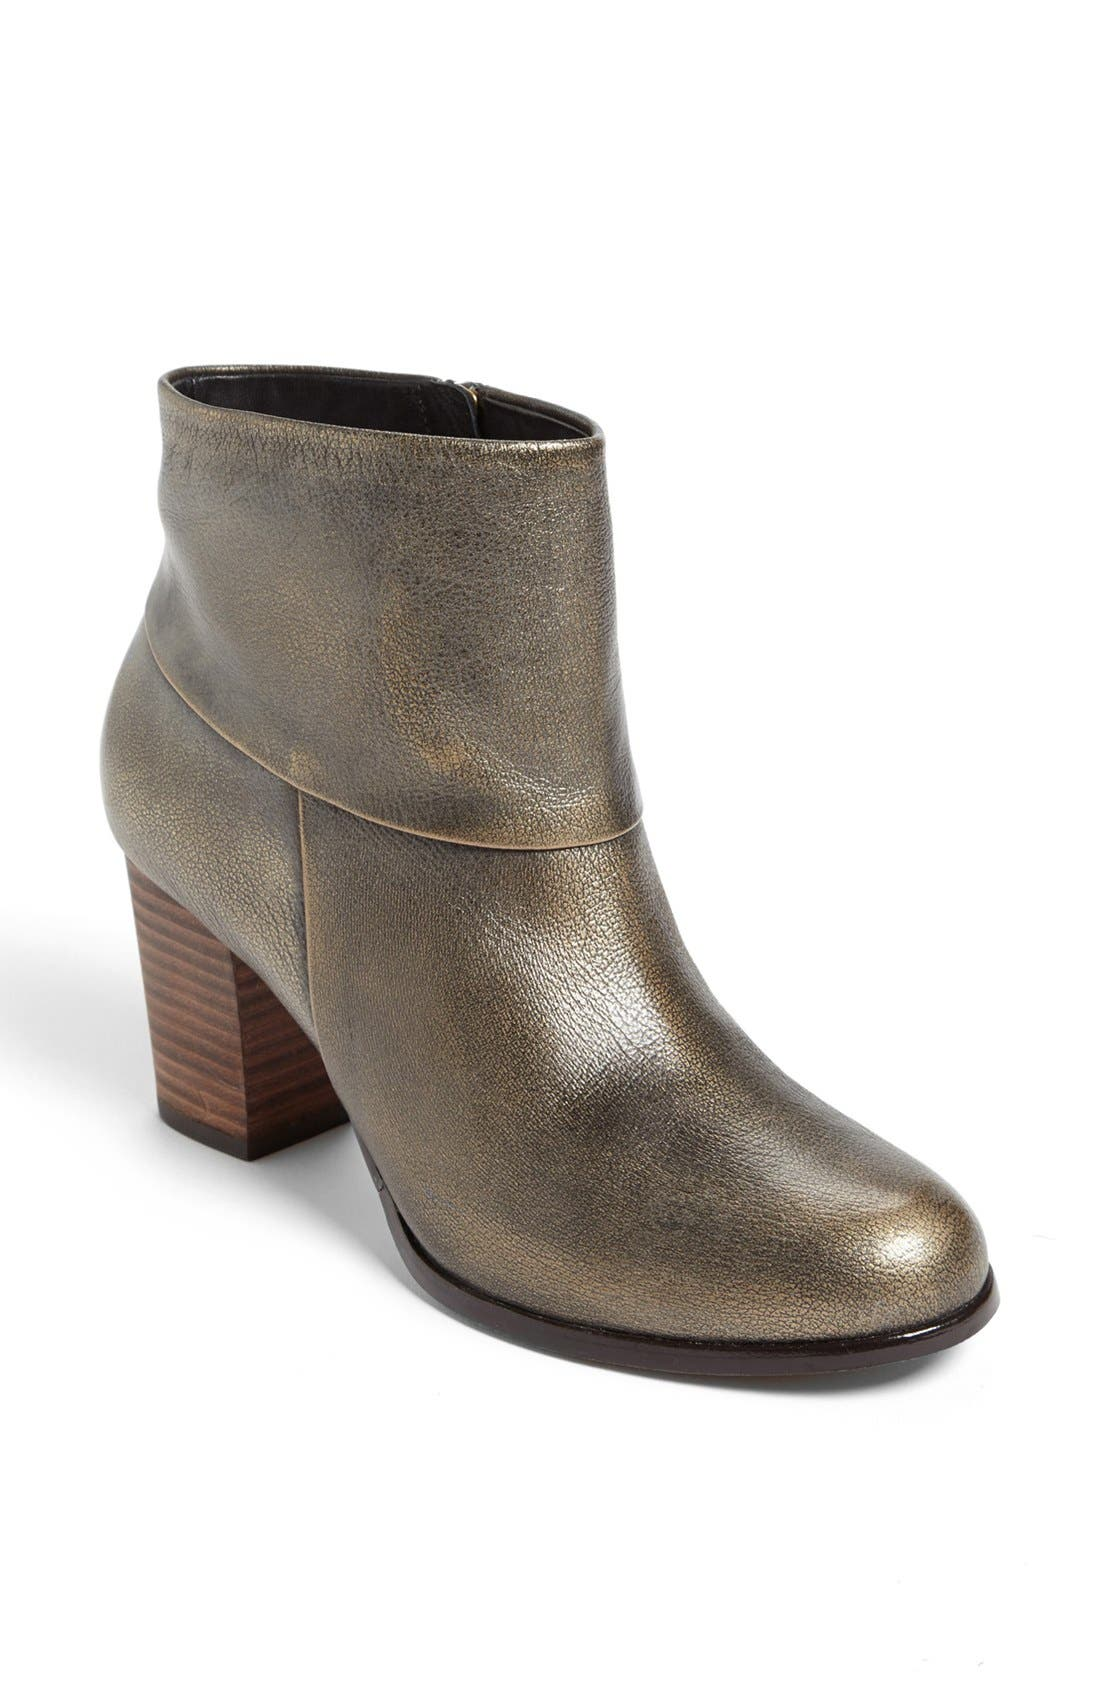 Alternate Image 1 Selected - Cole Haan 'Cassidy' Bootie